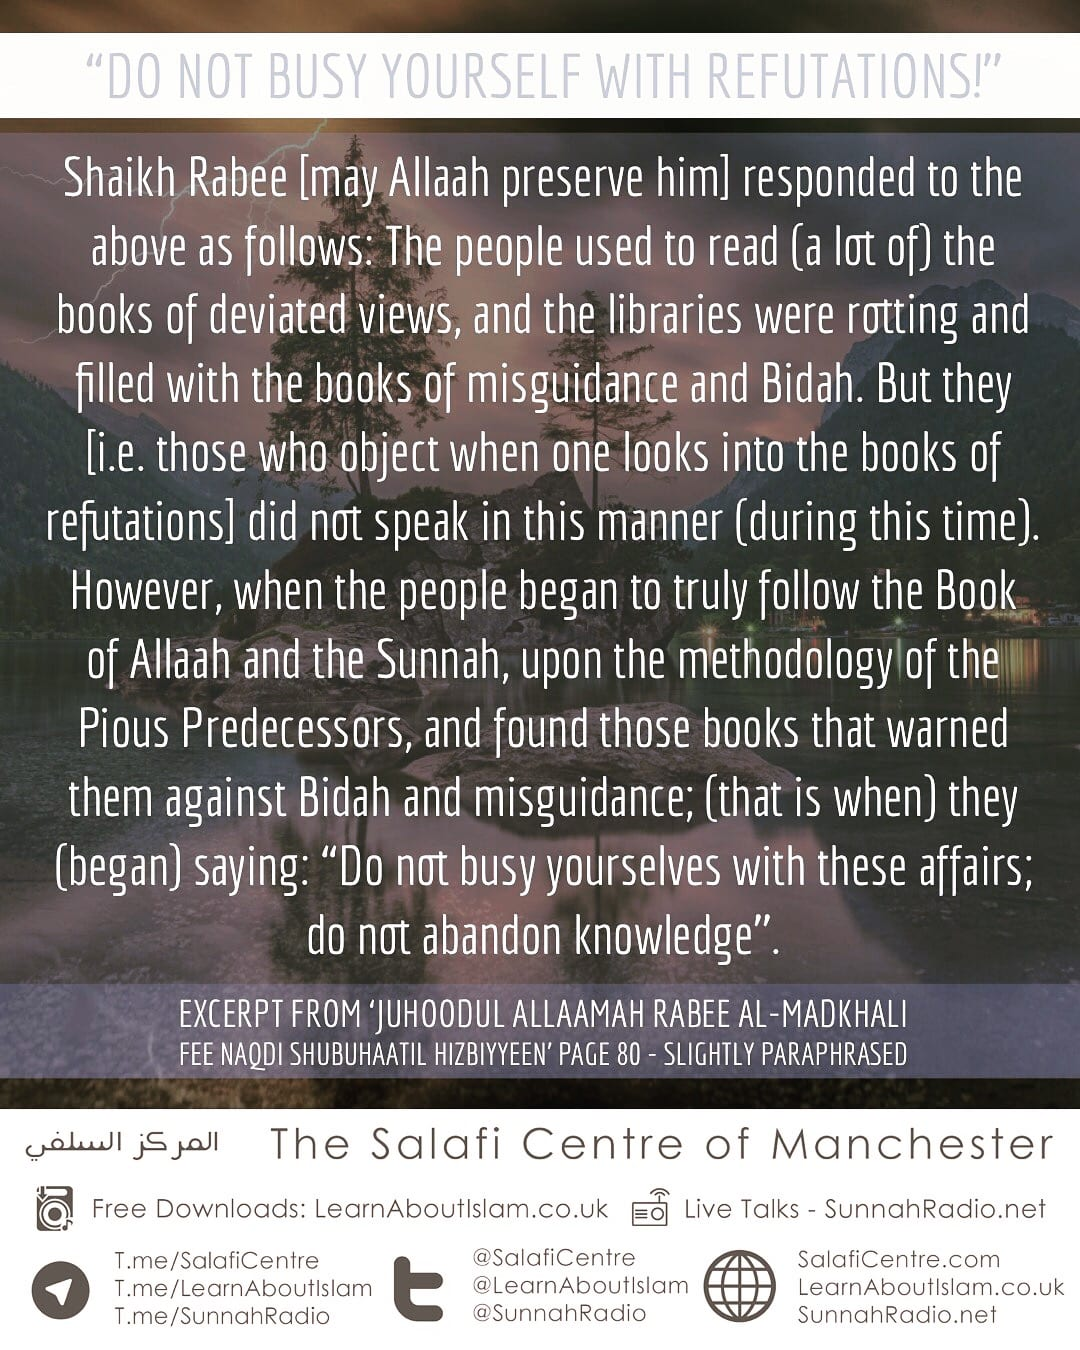 "Exposing The Deception of The Treacherous Hizbiyyoon and Mumayyi'oon – Those Seeking to Revive One of The Outdated Flimsy Shubuhaat: ""Busying Oneself with Refutations Is Not Correct!'' [PDF 2 Pages]"